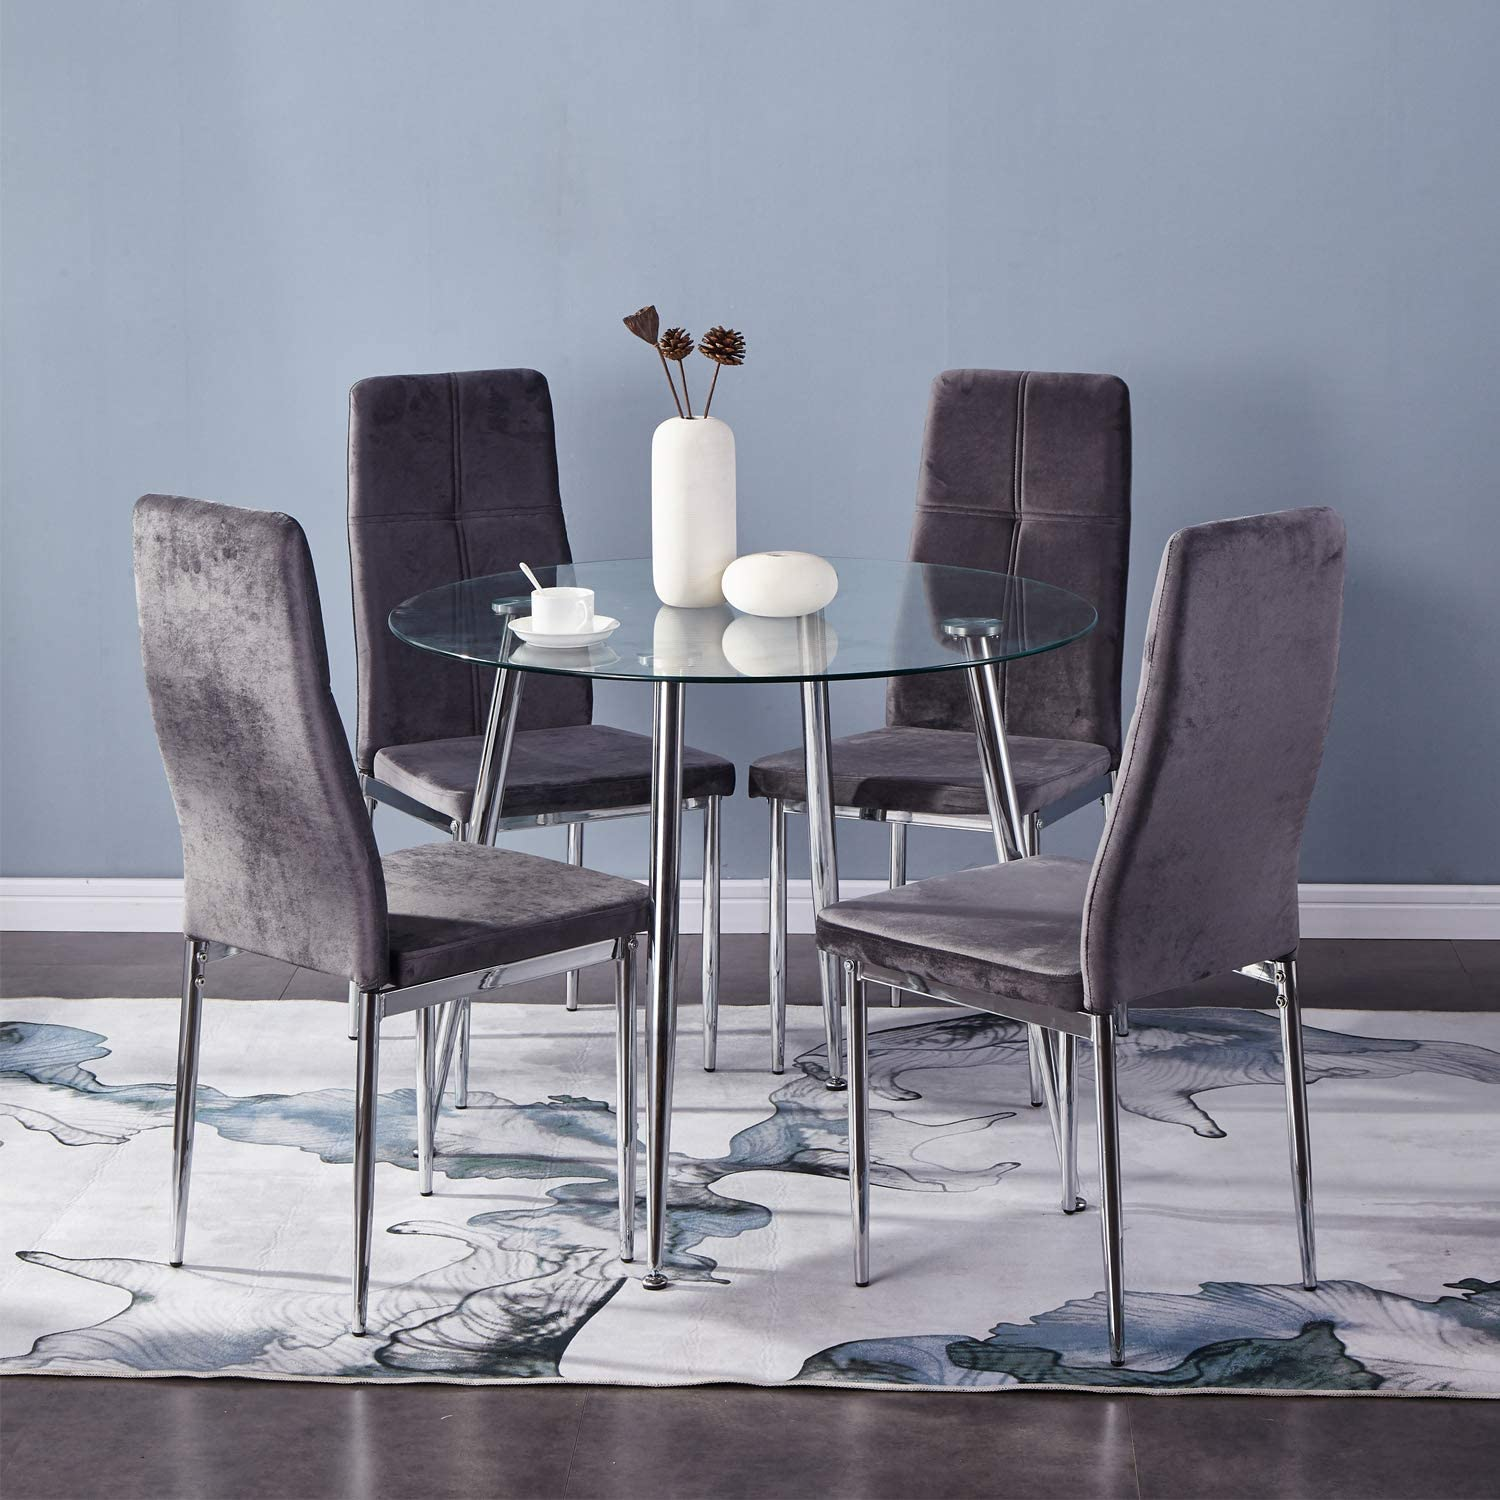 Small Dining Table Set For 4, Goldfan Small Round Dining Table And Chairs Set Of 4 Modern Glass Kitchen Dining Table Set With Chrome Legs For Living Room Office Furniture Amazon Co Uk Kitchen Home